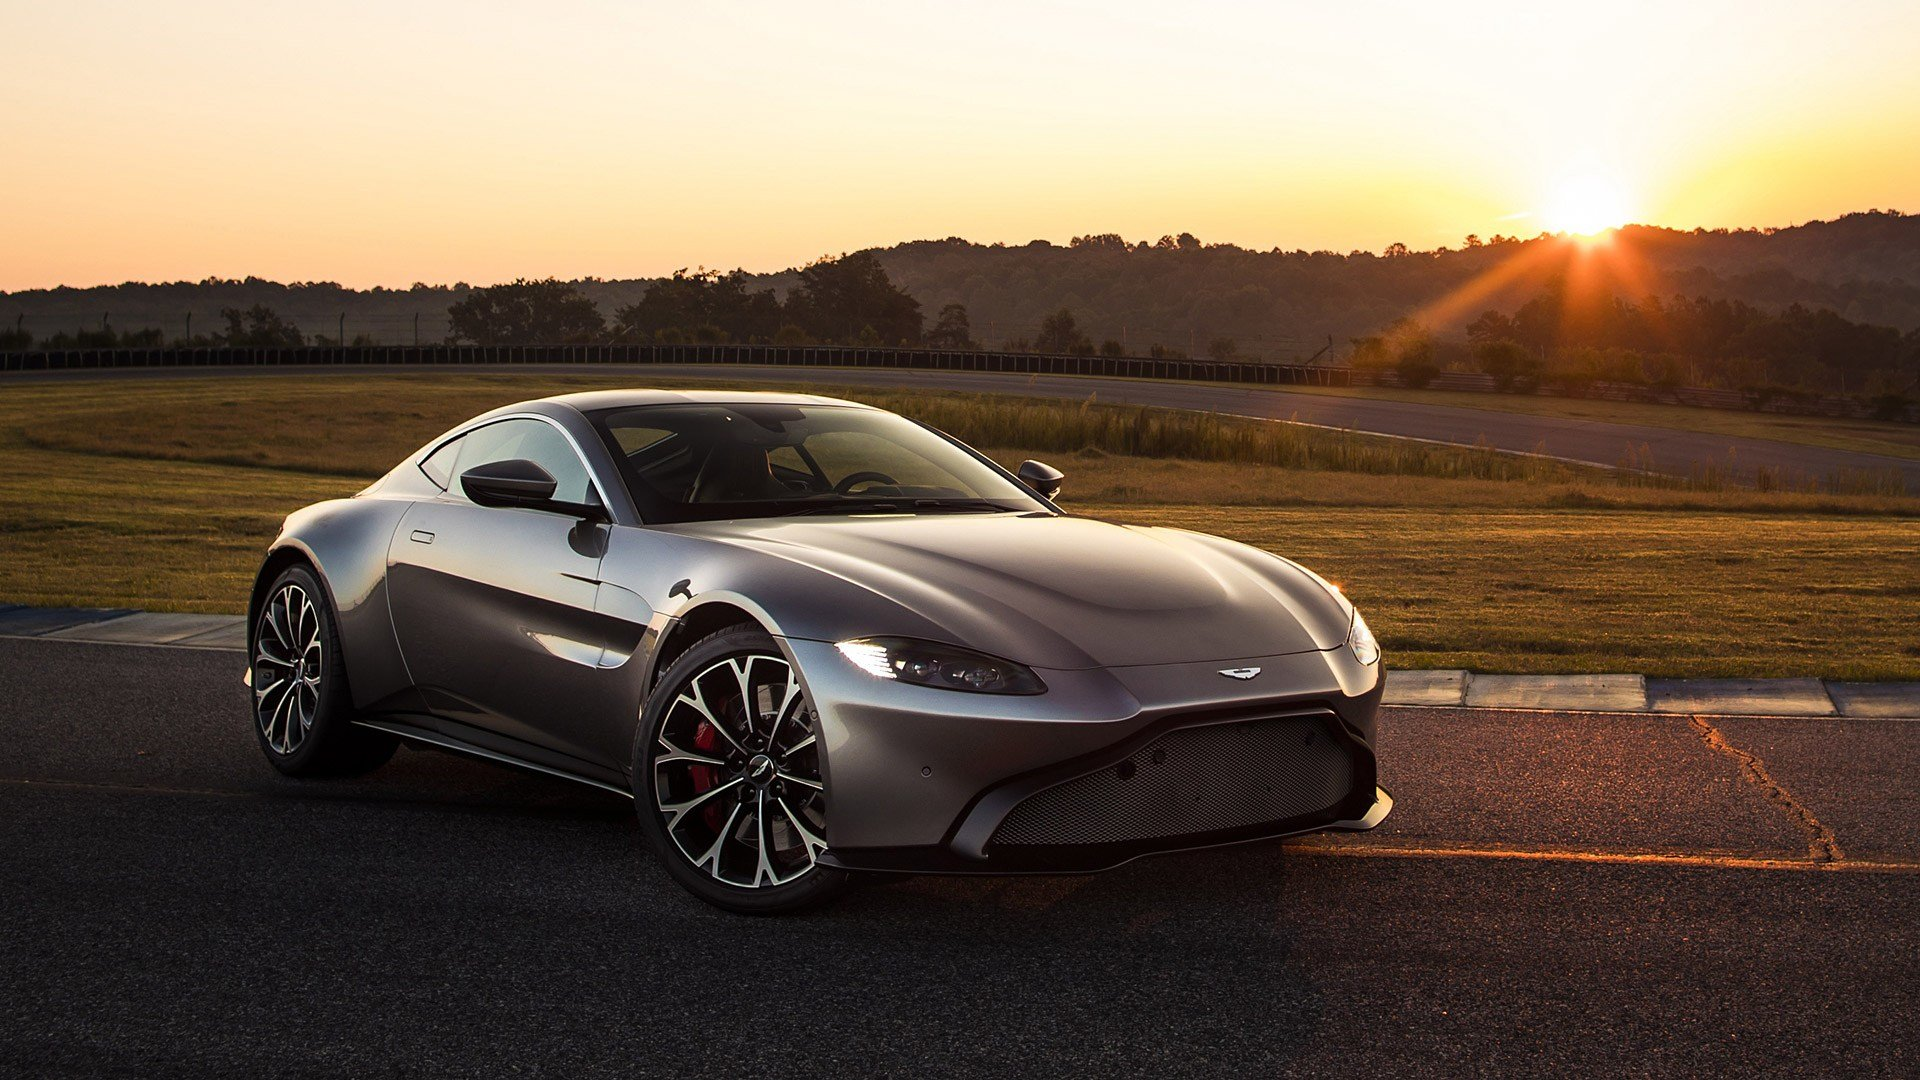 Latest 2019 Aston Martin Vantage Wallpapers Hd Images Wsupercars Free Download